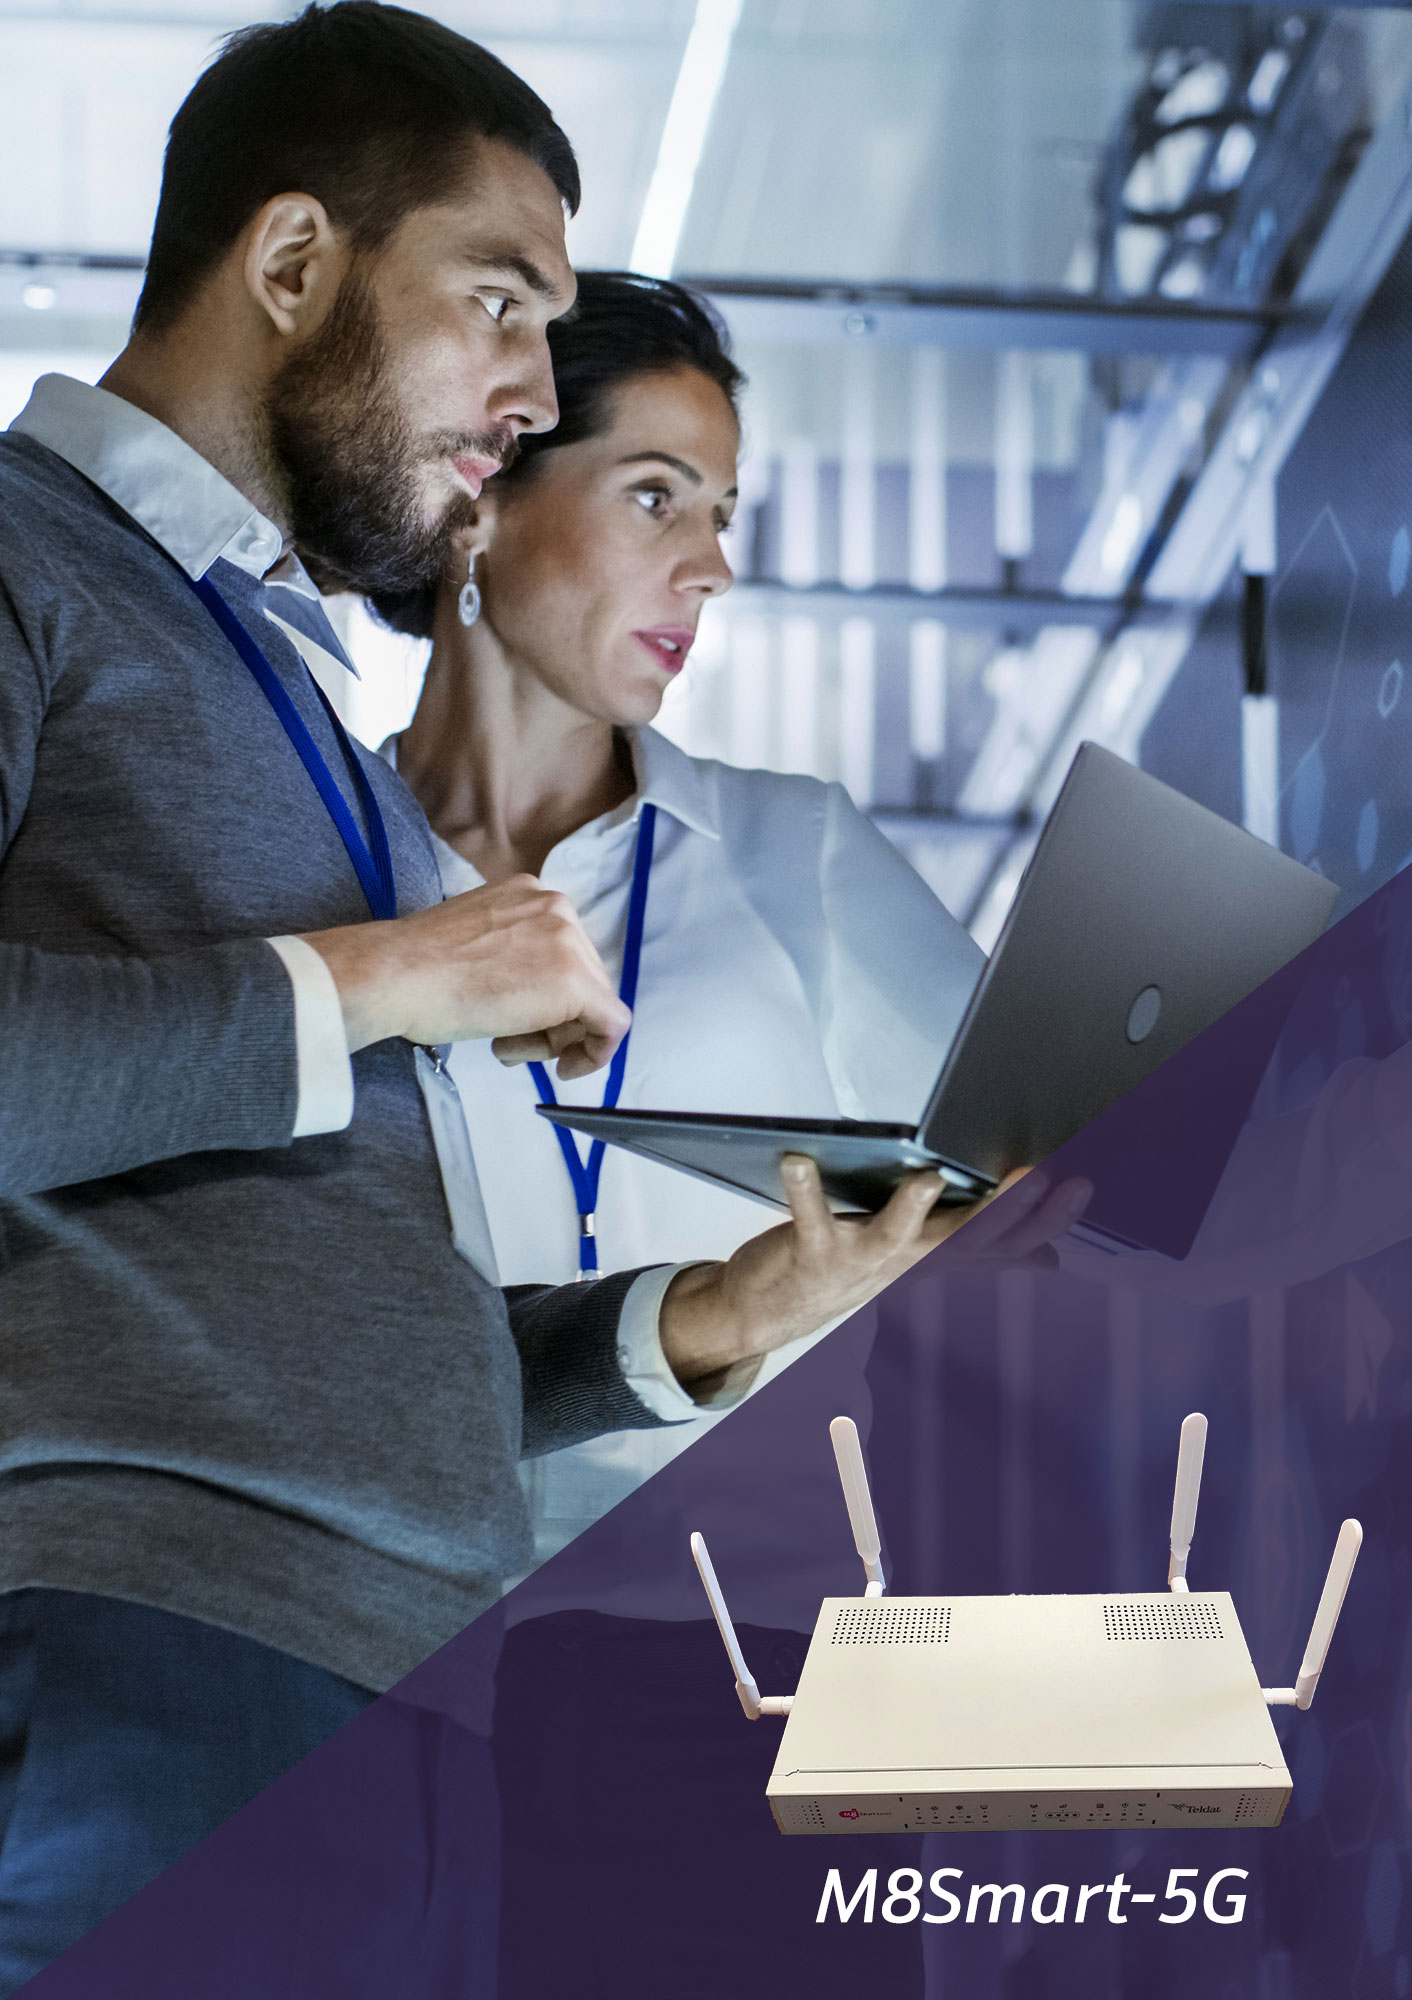 Teldat M8Smart-5G router with 5G SA, NSA, DSS, ZTP, plus SD-WAN connectivity.